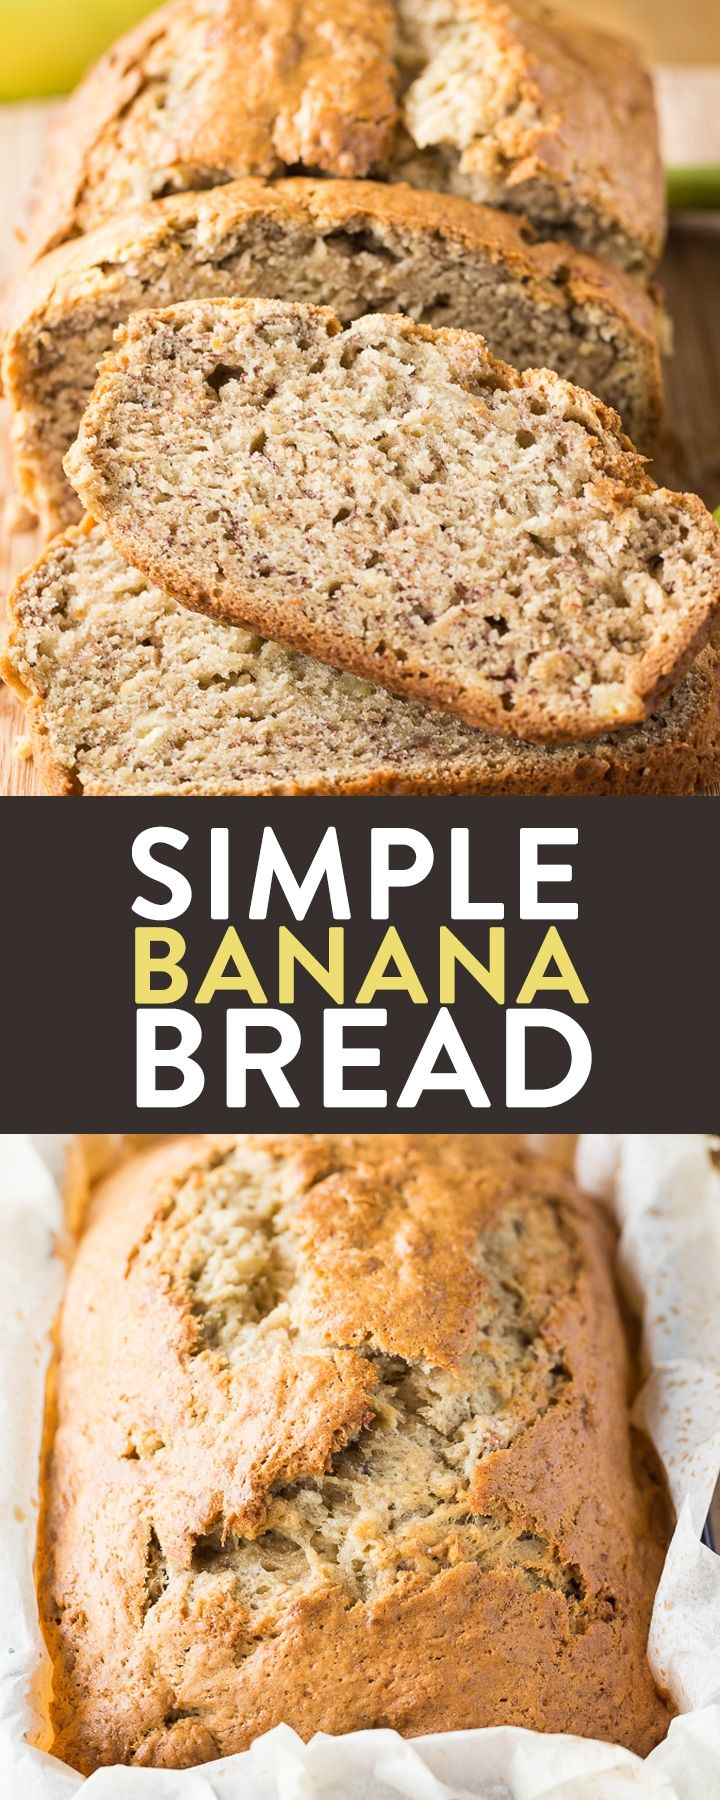 This simple banana bread recipe is an easy and delicious way to use up leftover bananas. It's a classic dessert recipe! It doesn't take much time in the kitchen to prepare either!  via @RandaDerkson